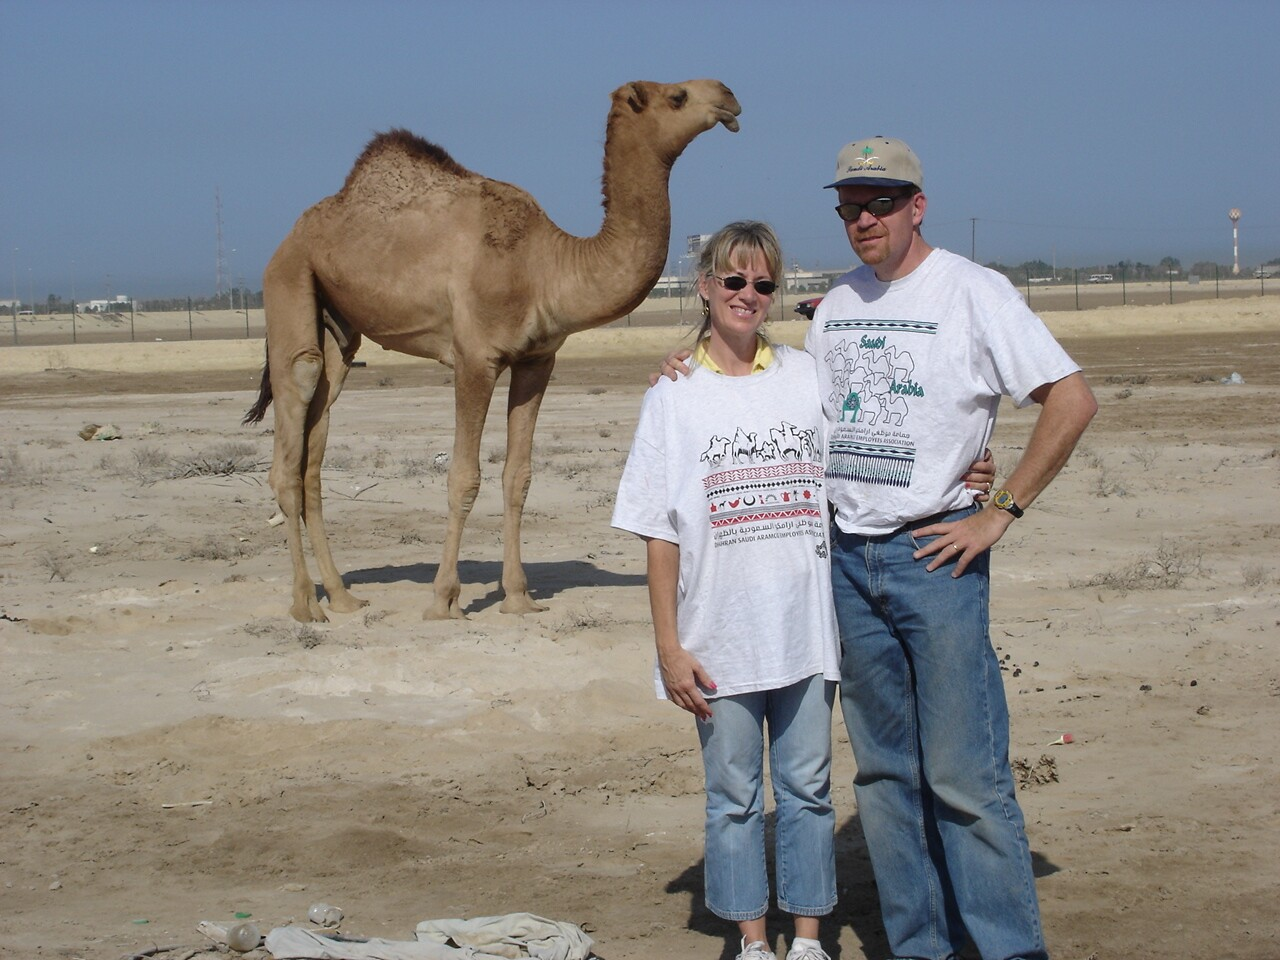 Photos: 🙏How Hanover couple's 'vacations with a purpose' are changinglives